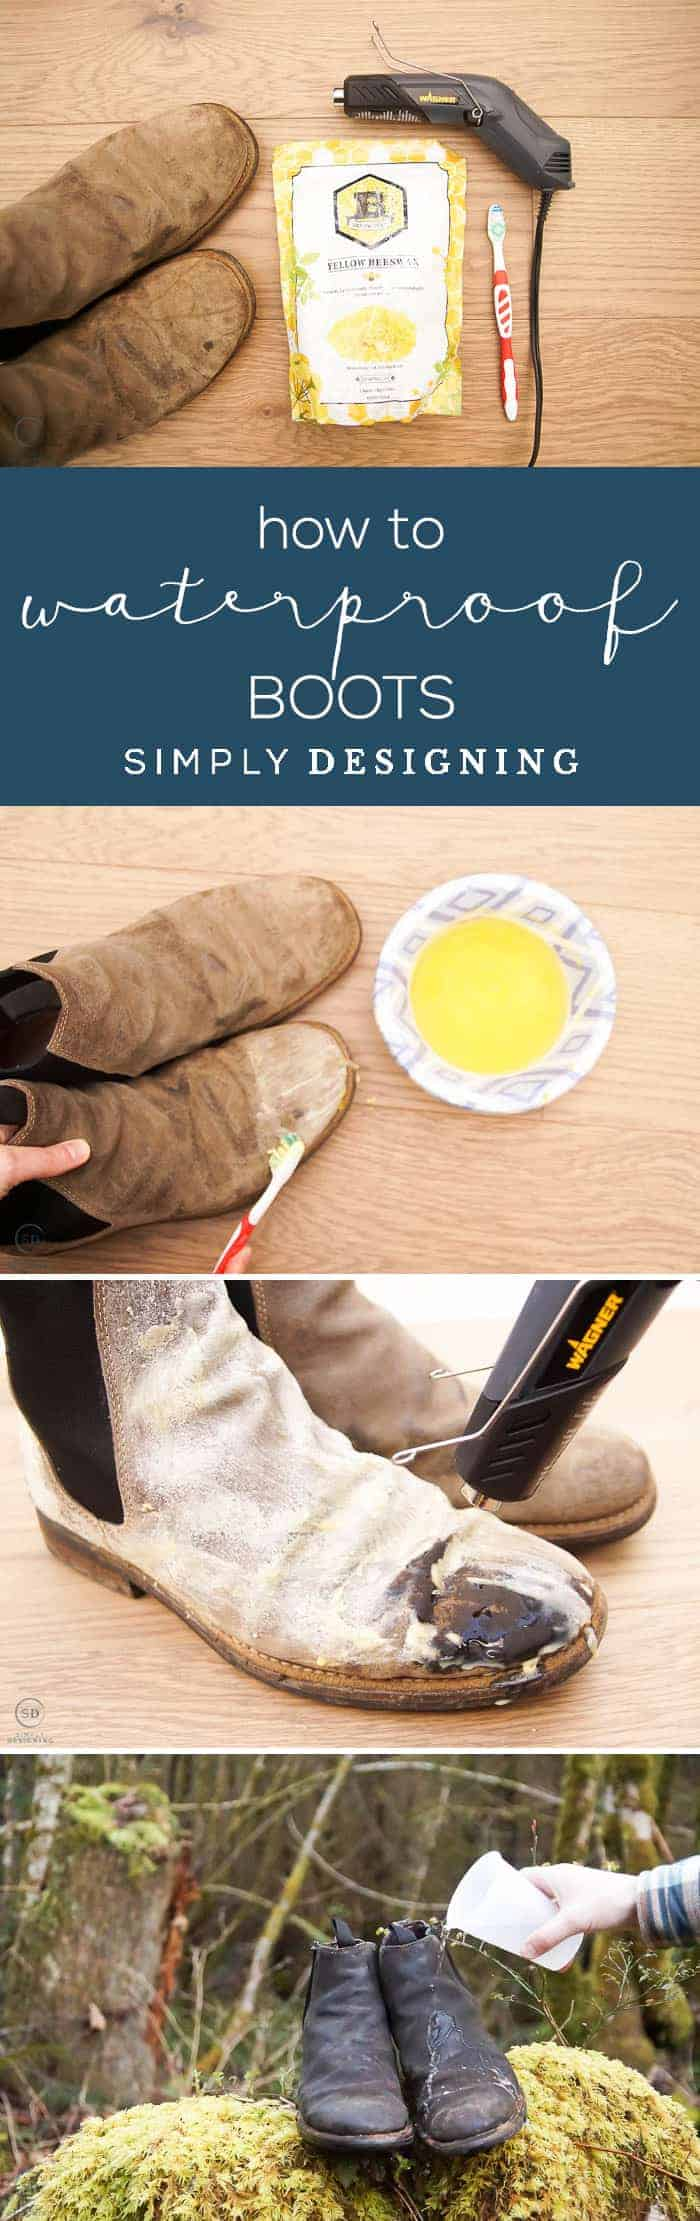 Learn tips and tricks for how to waterproof leather boots easily with this cost-effective method using beeswax a toothbrush and a heat gun